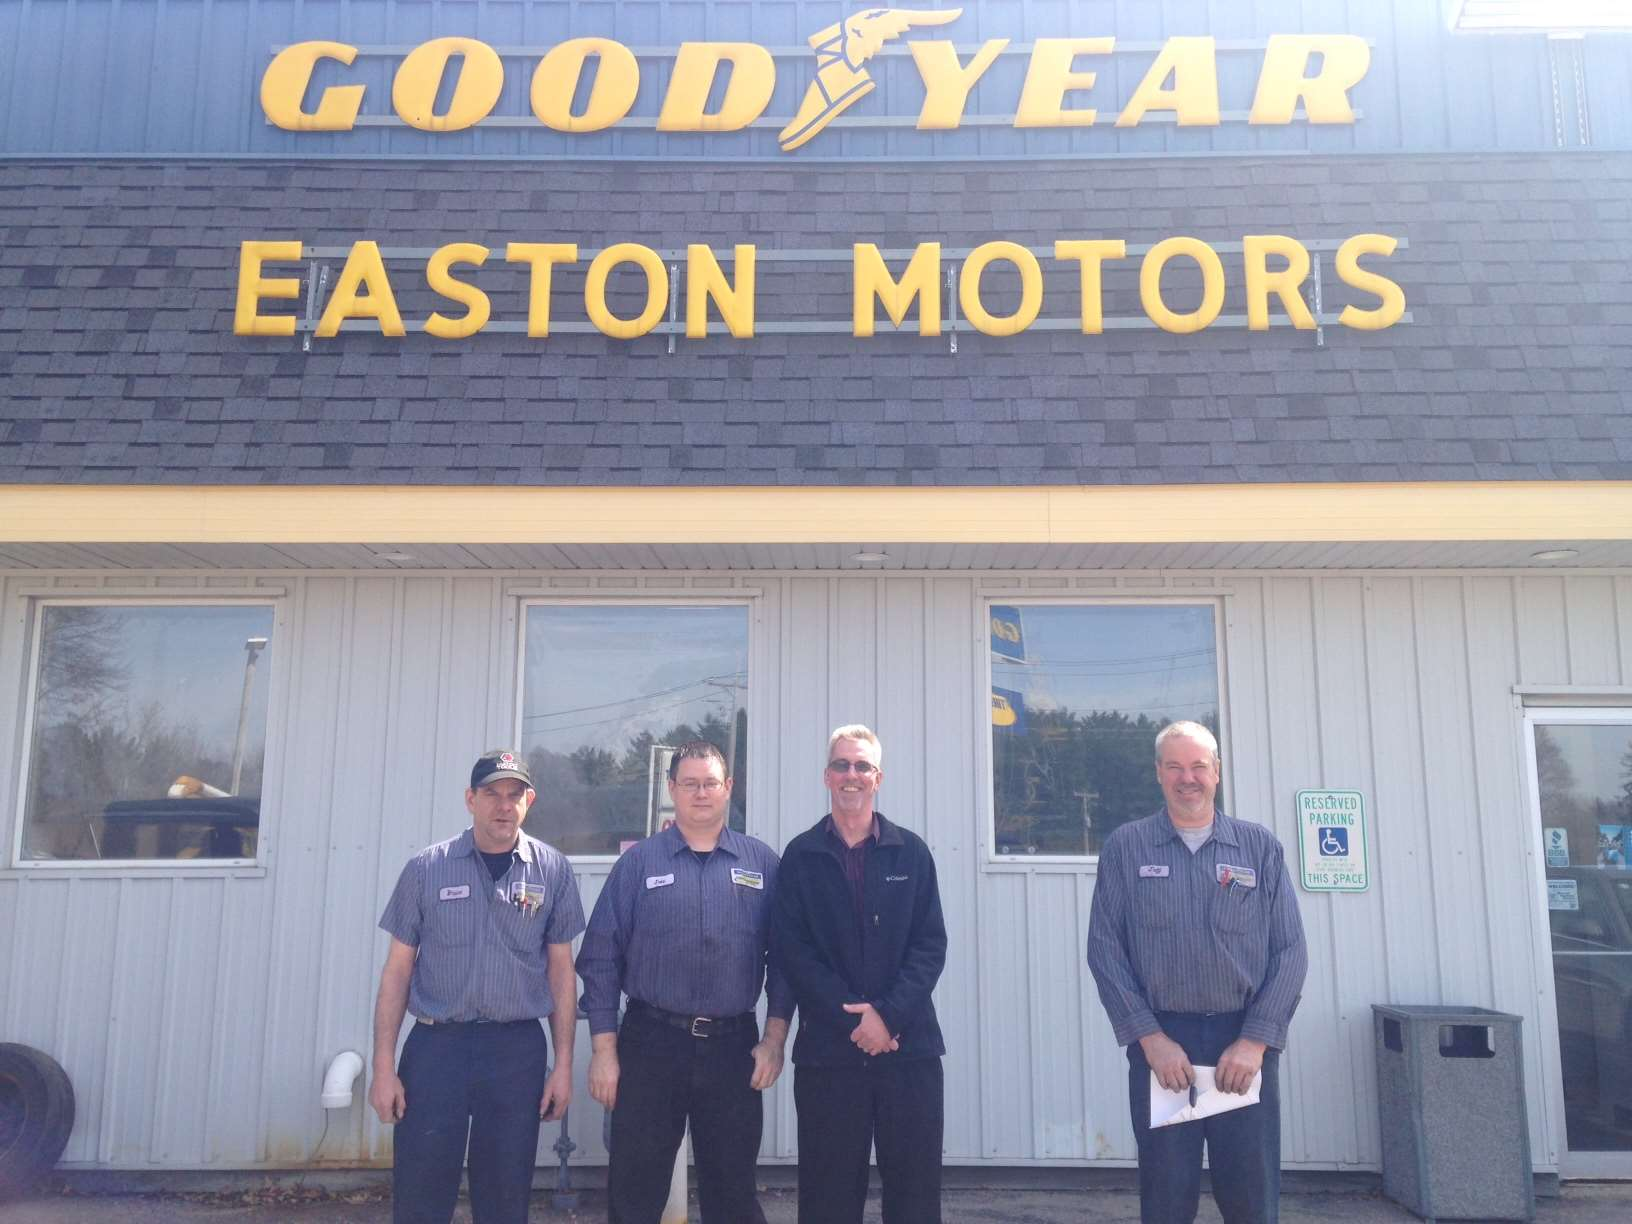 Discover Easton Motors / Goodyear Tire & Service Network